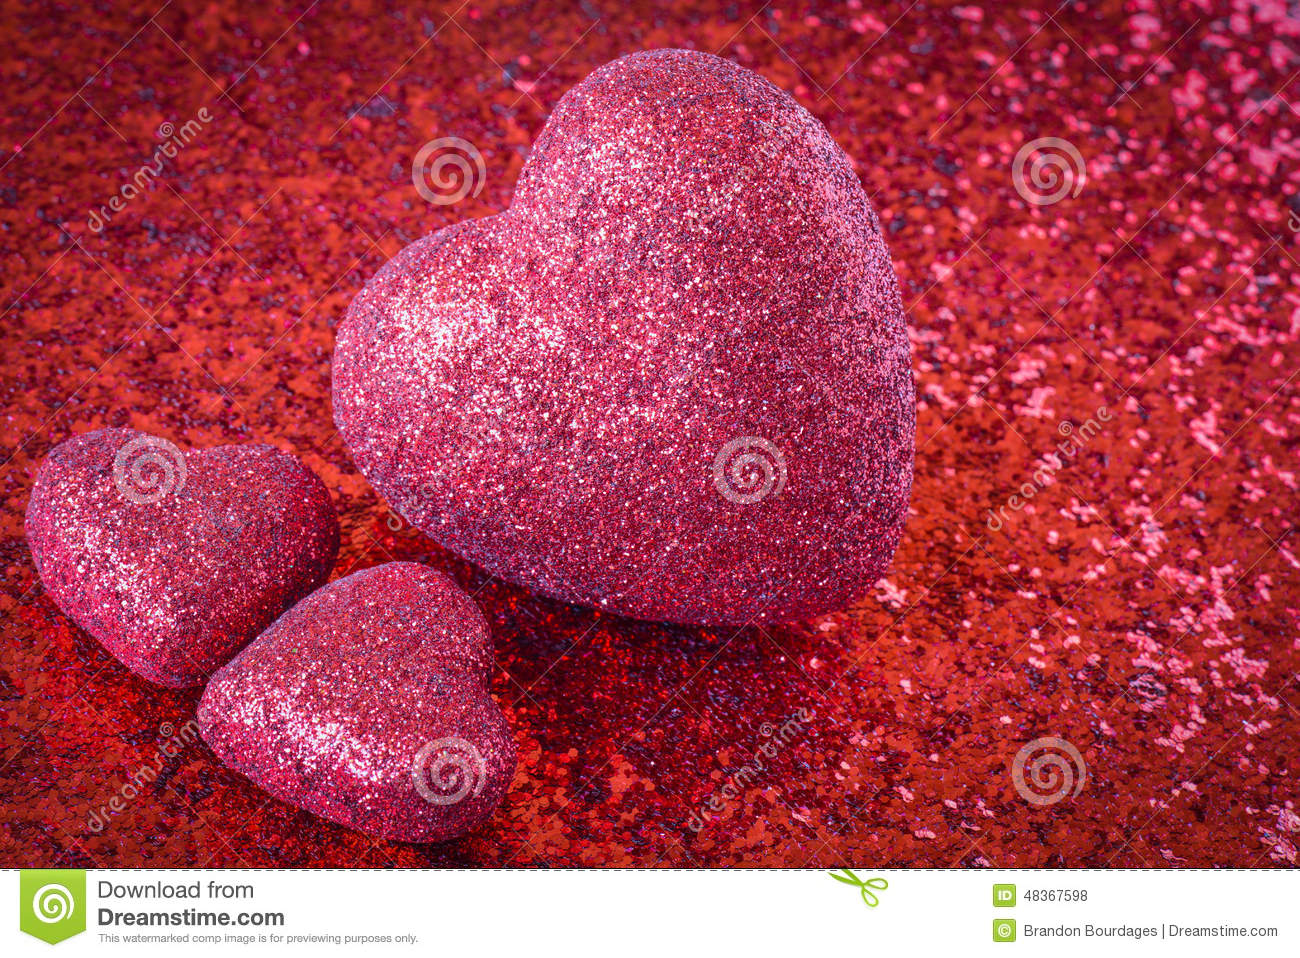 Red Hearts with Glitter Background